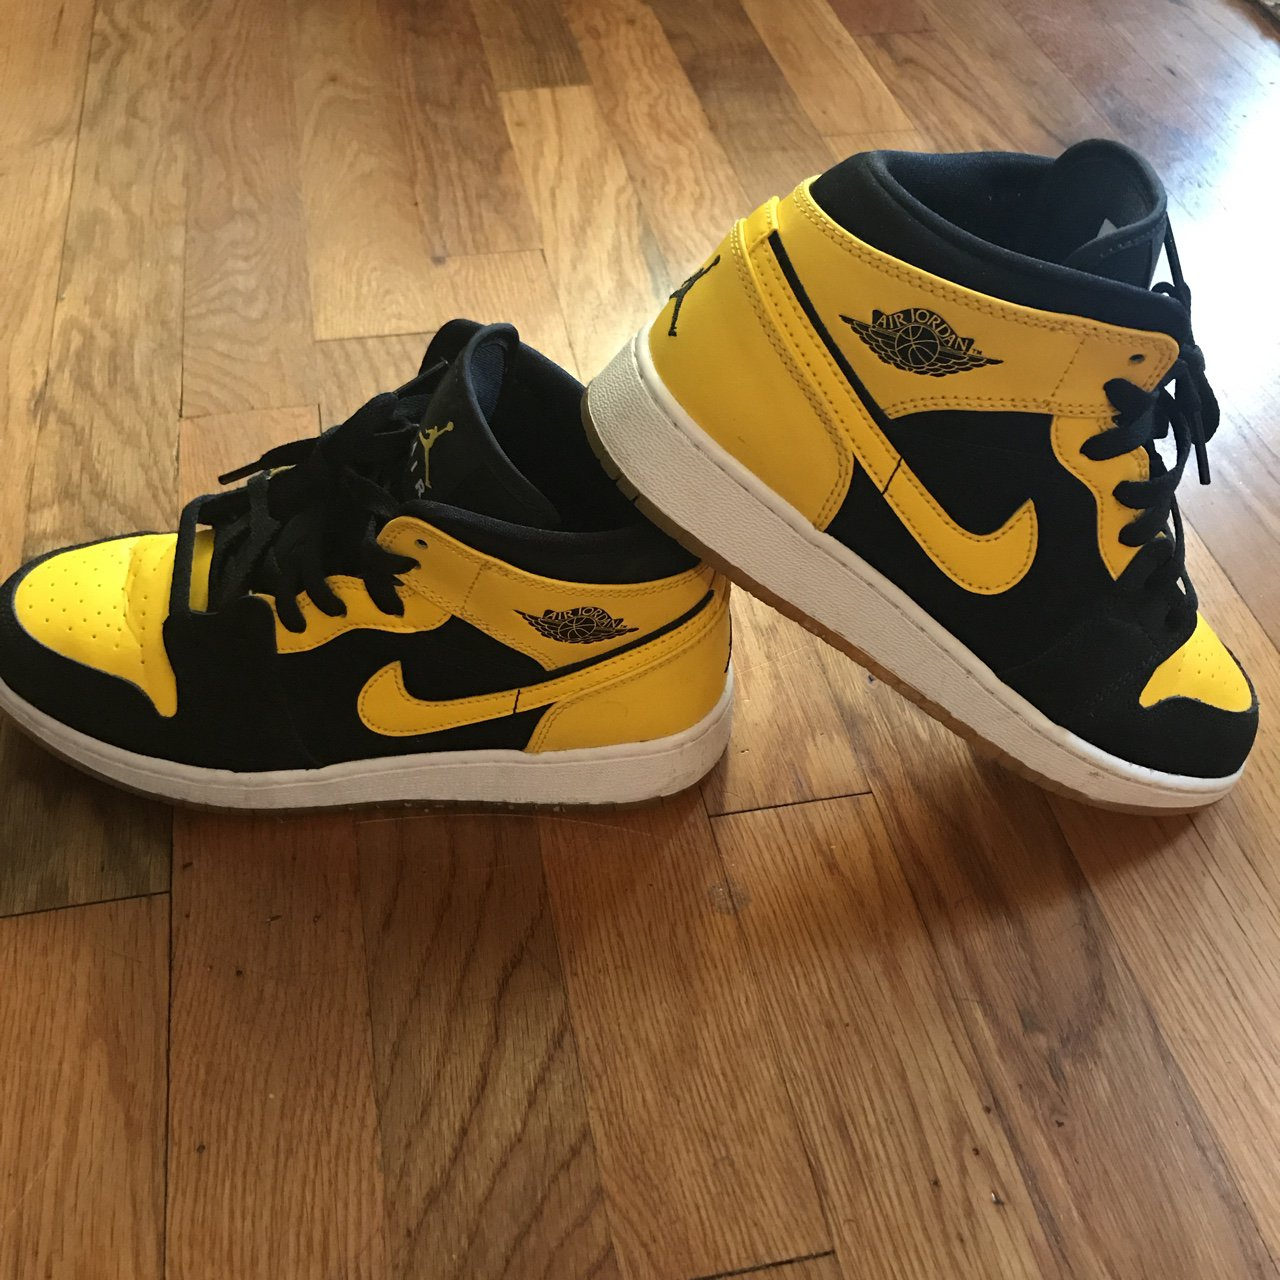 210a253303c RESERVED. DO NOT PURCHASE Jordan 1 Retro Mid New Love Only - Depop